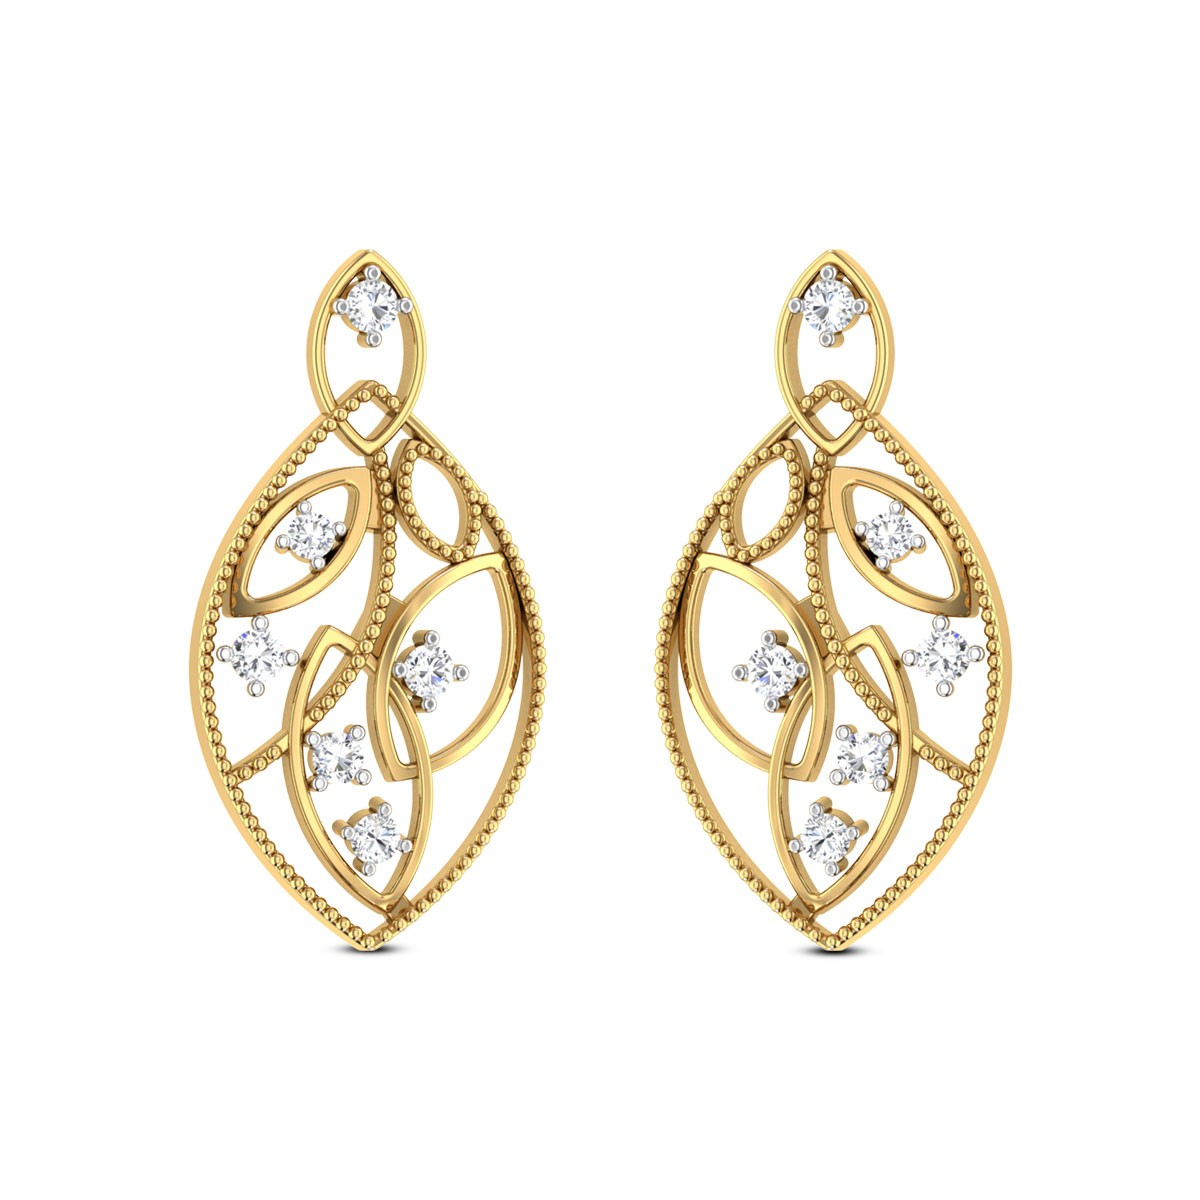 Entrancing Beau Diamond Earrings